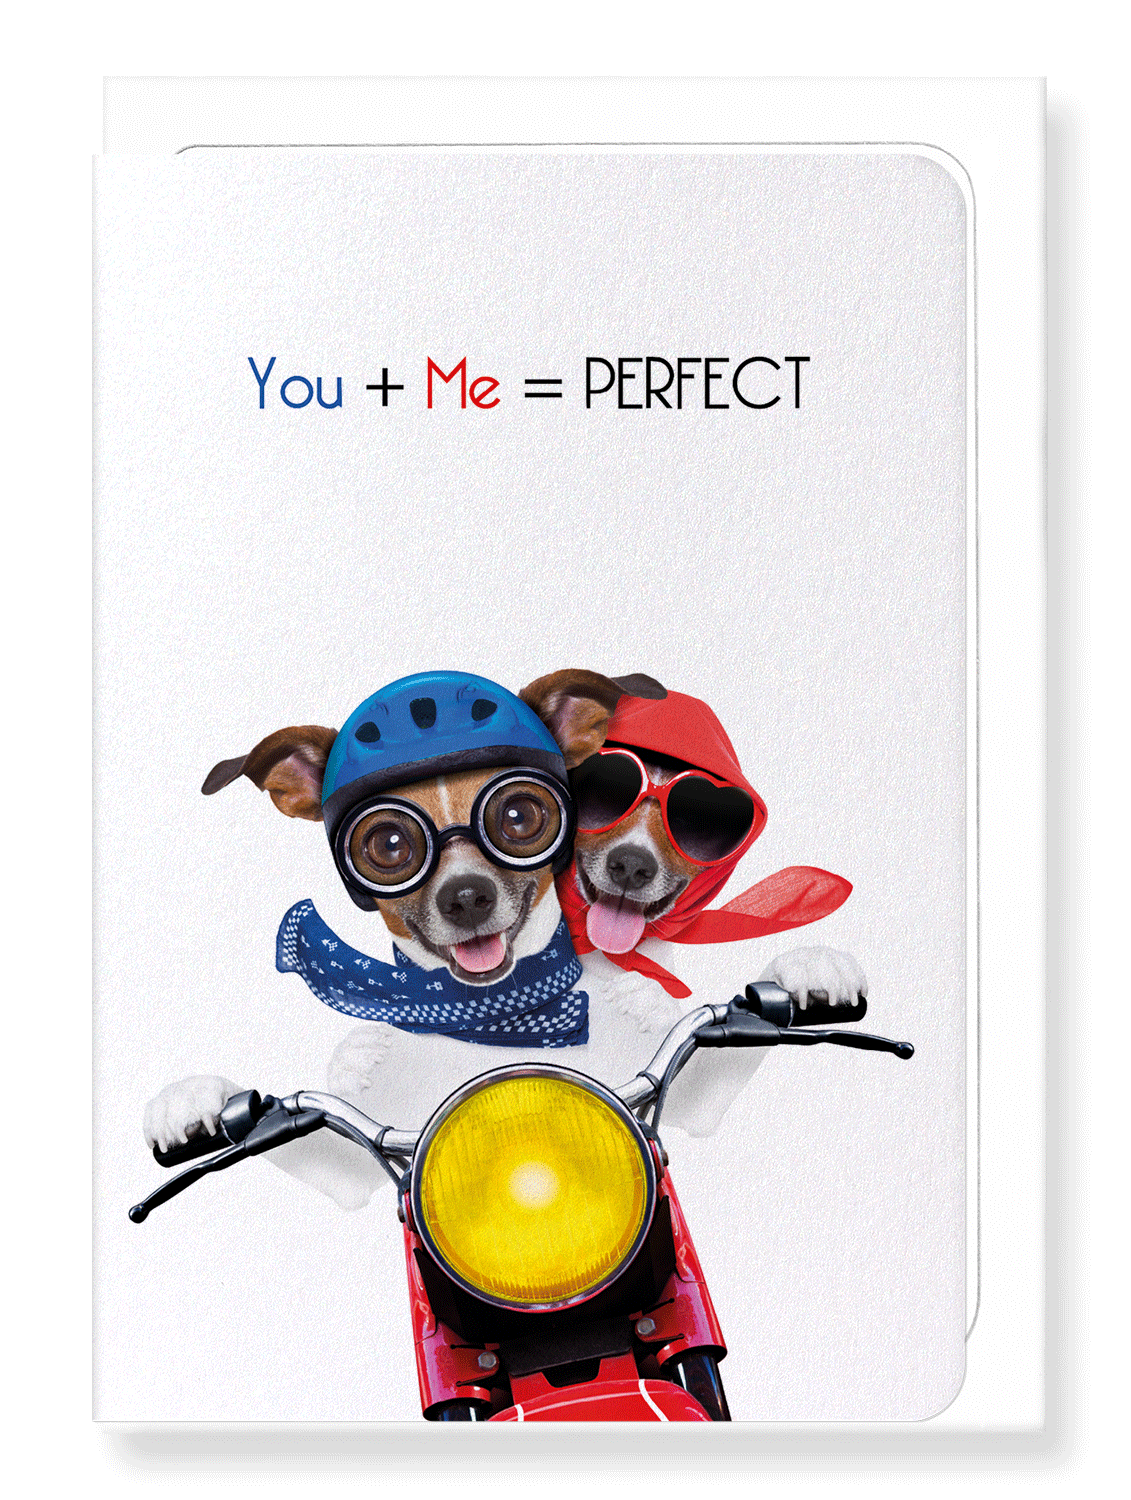 Ezen Designs - You + me = perfect - Greeting Card - Front